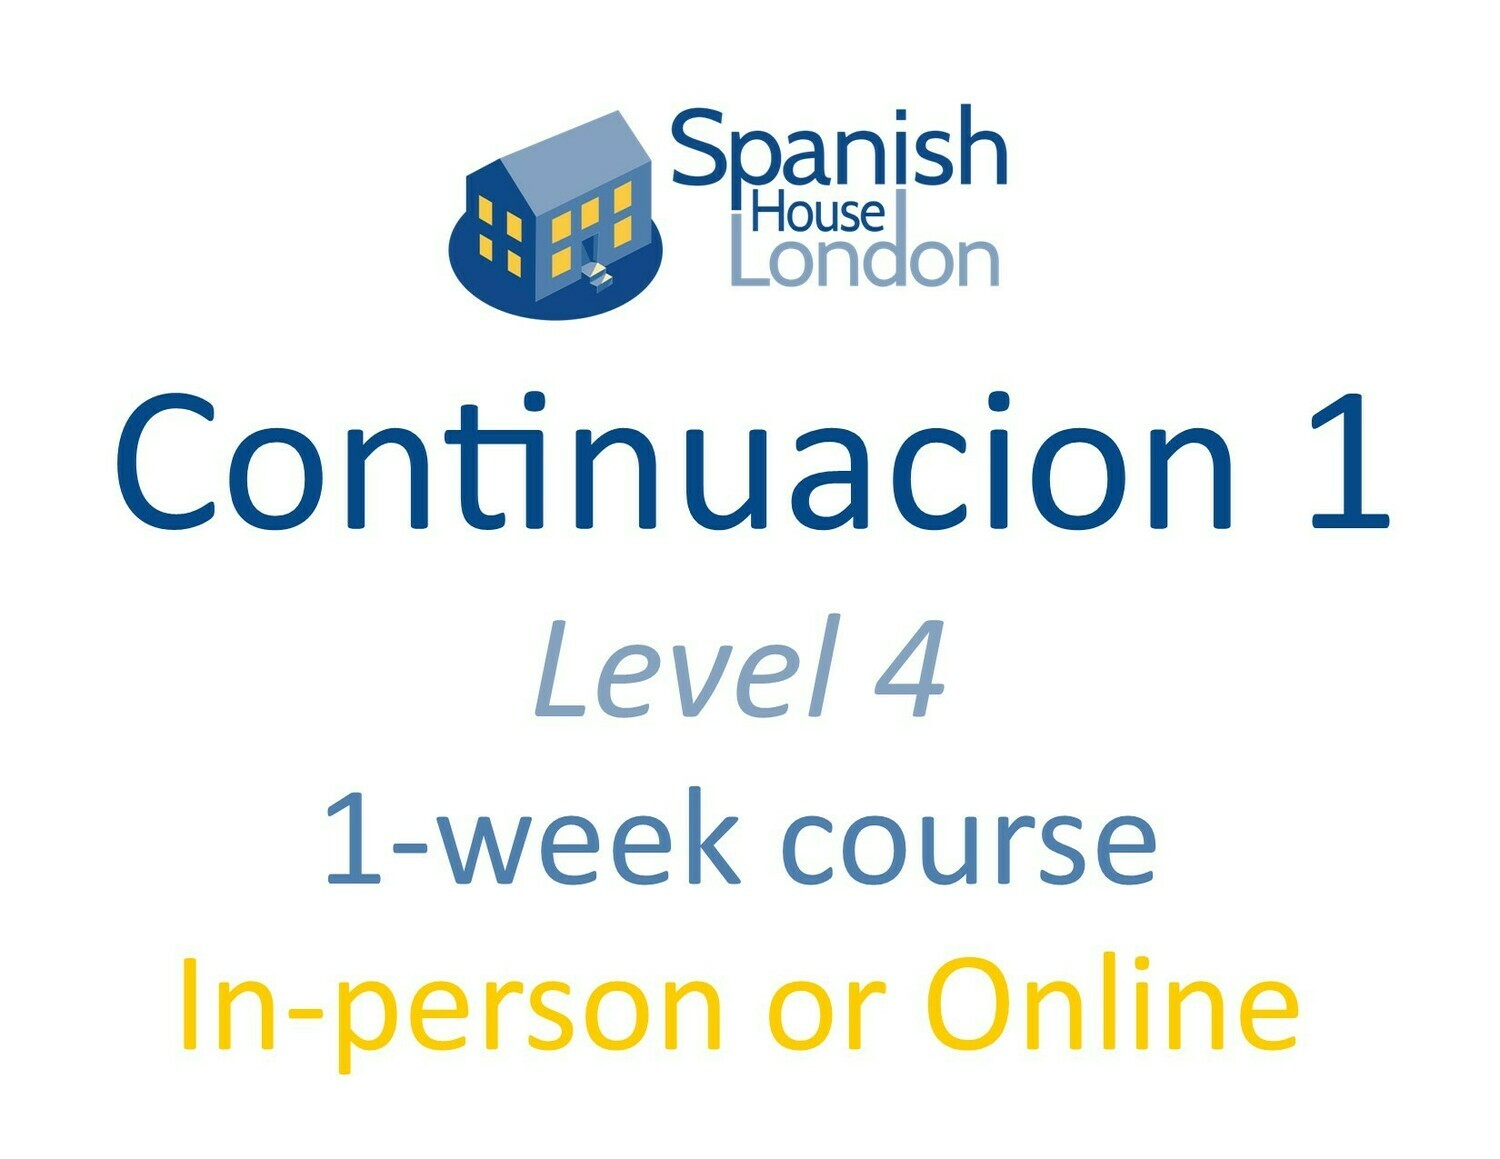 Continuacion 1 Course starting on 4th August at 6pm in Euston / King's Cross